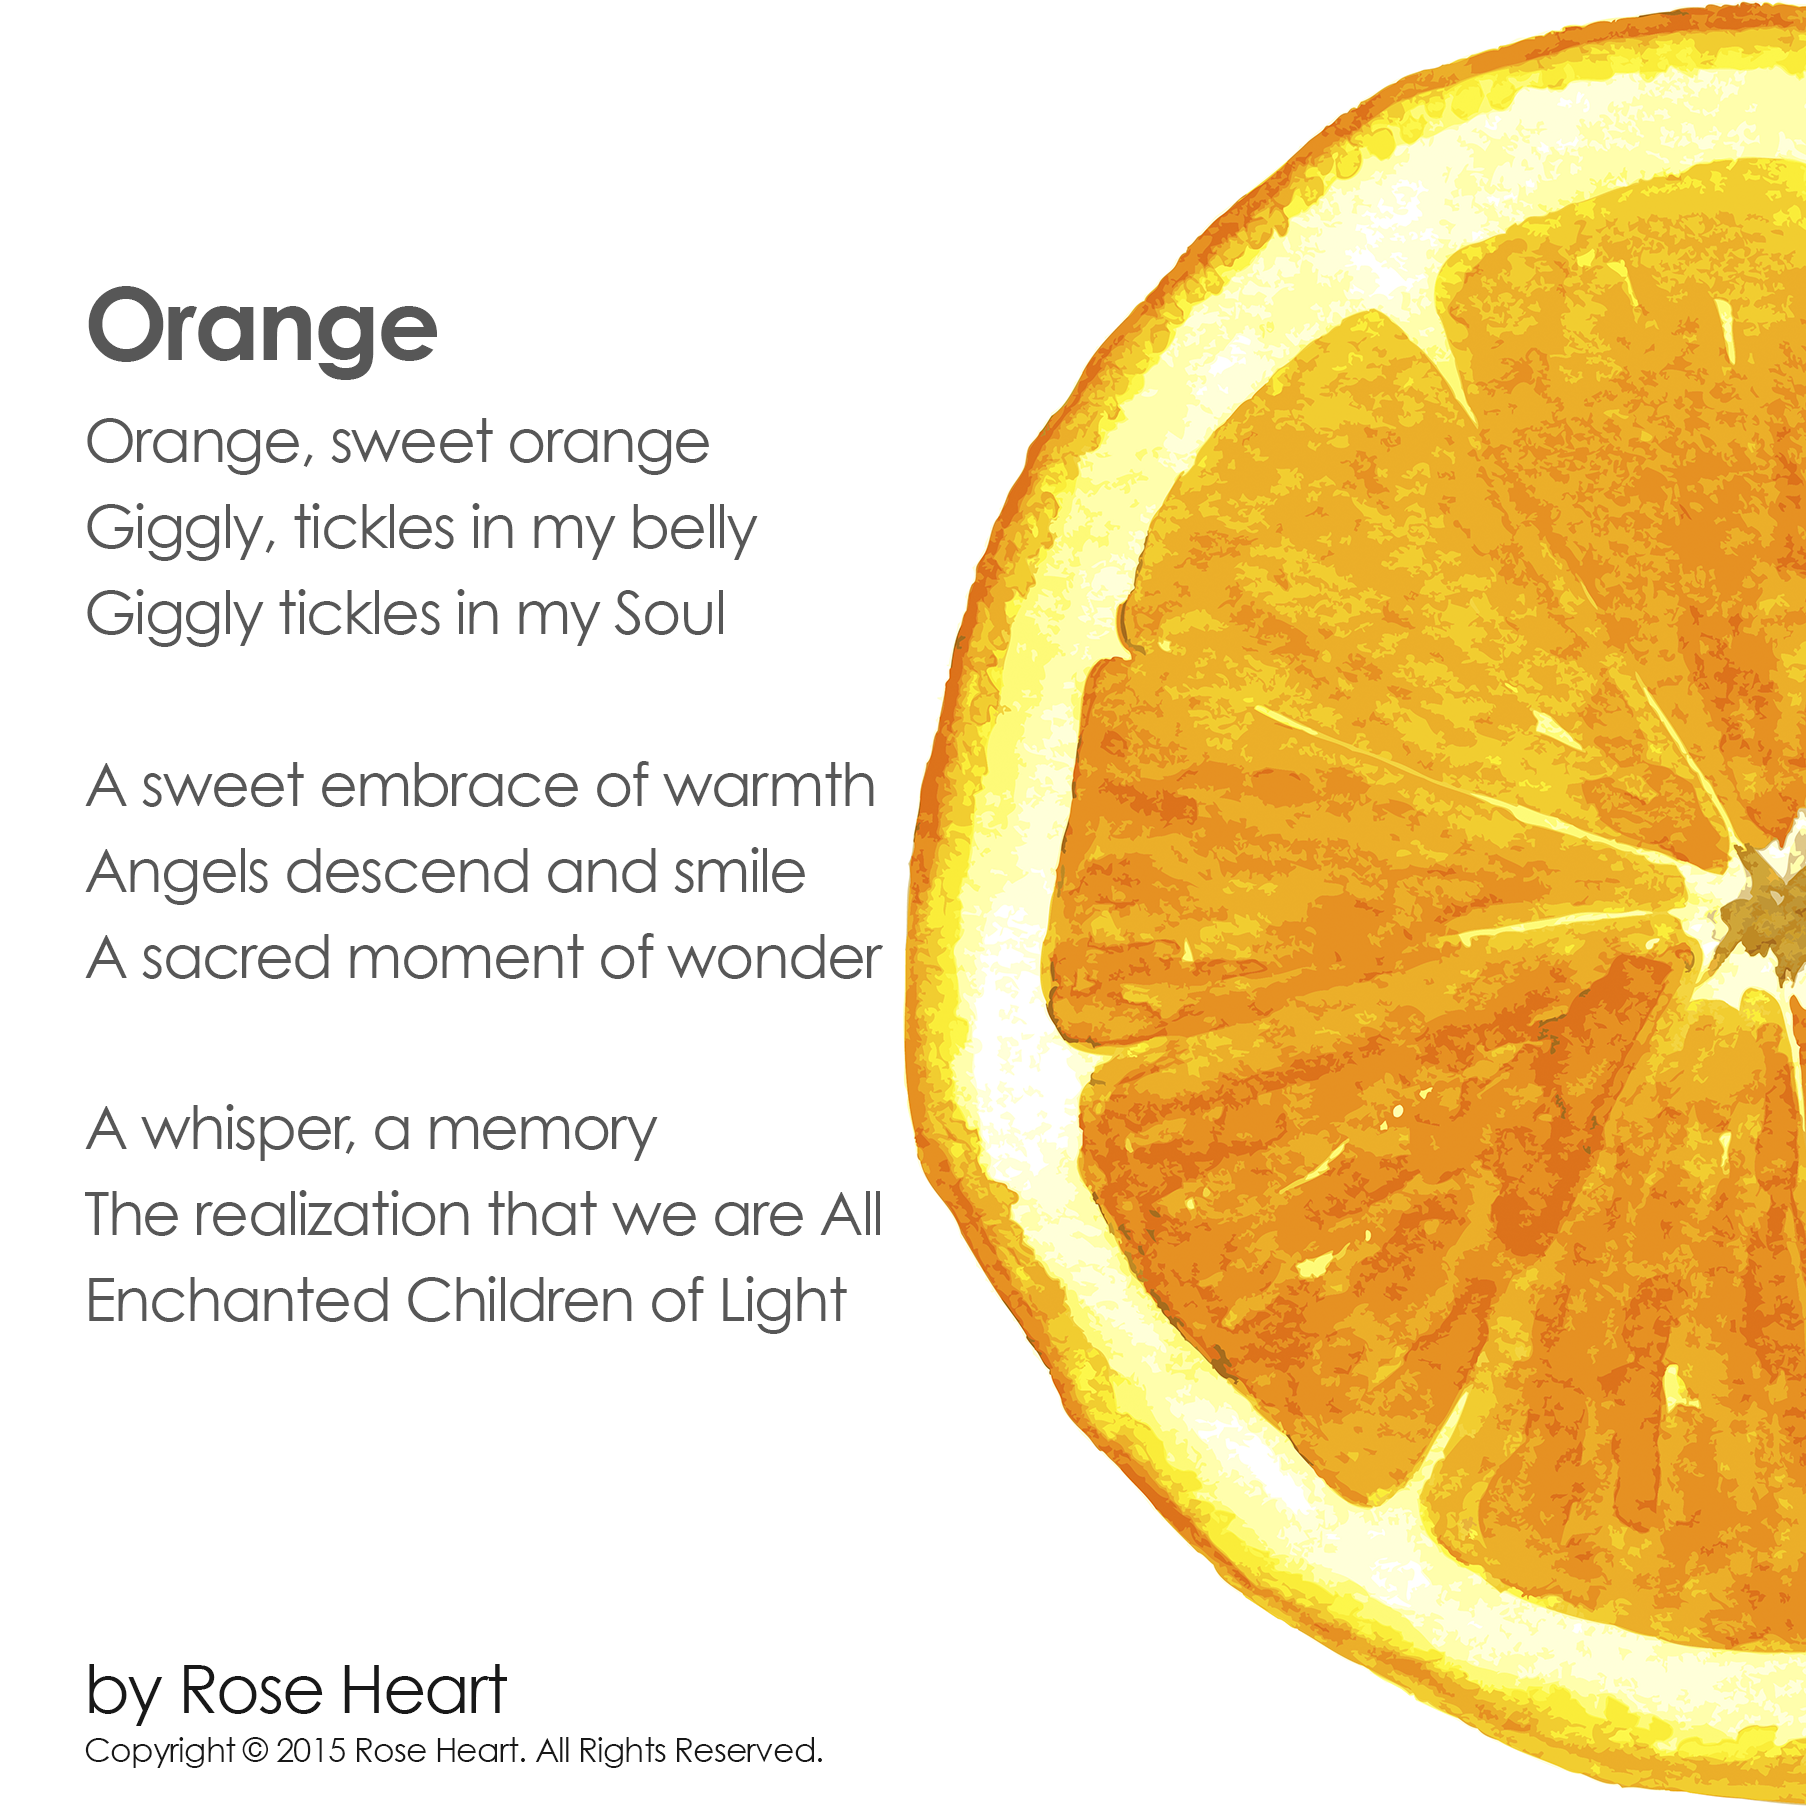 A playful poem about one of Rose's favorite citrus fruits (the ...